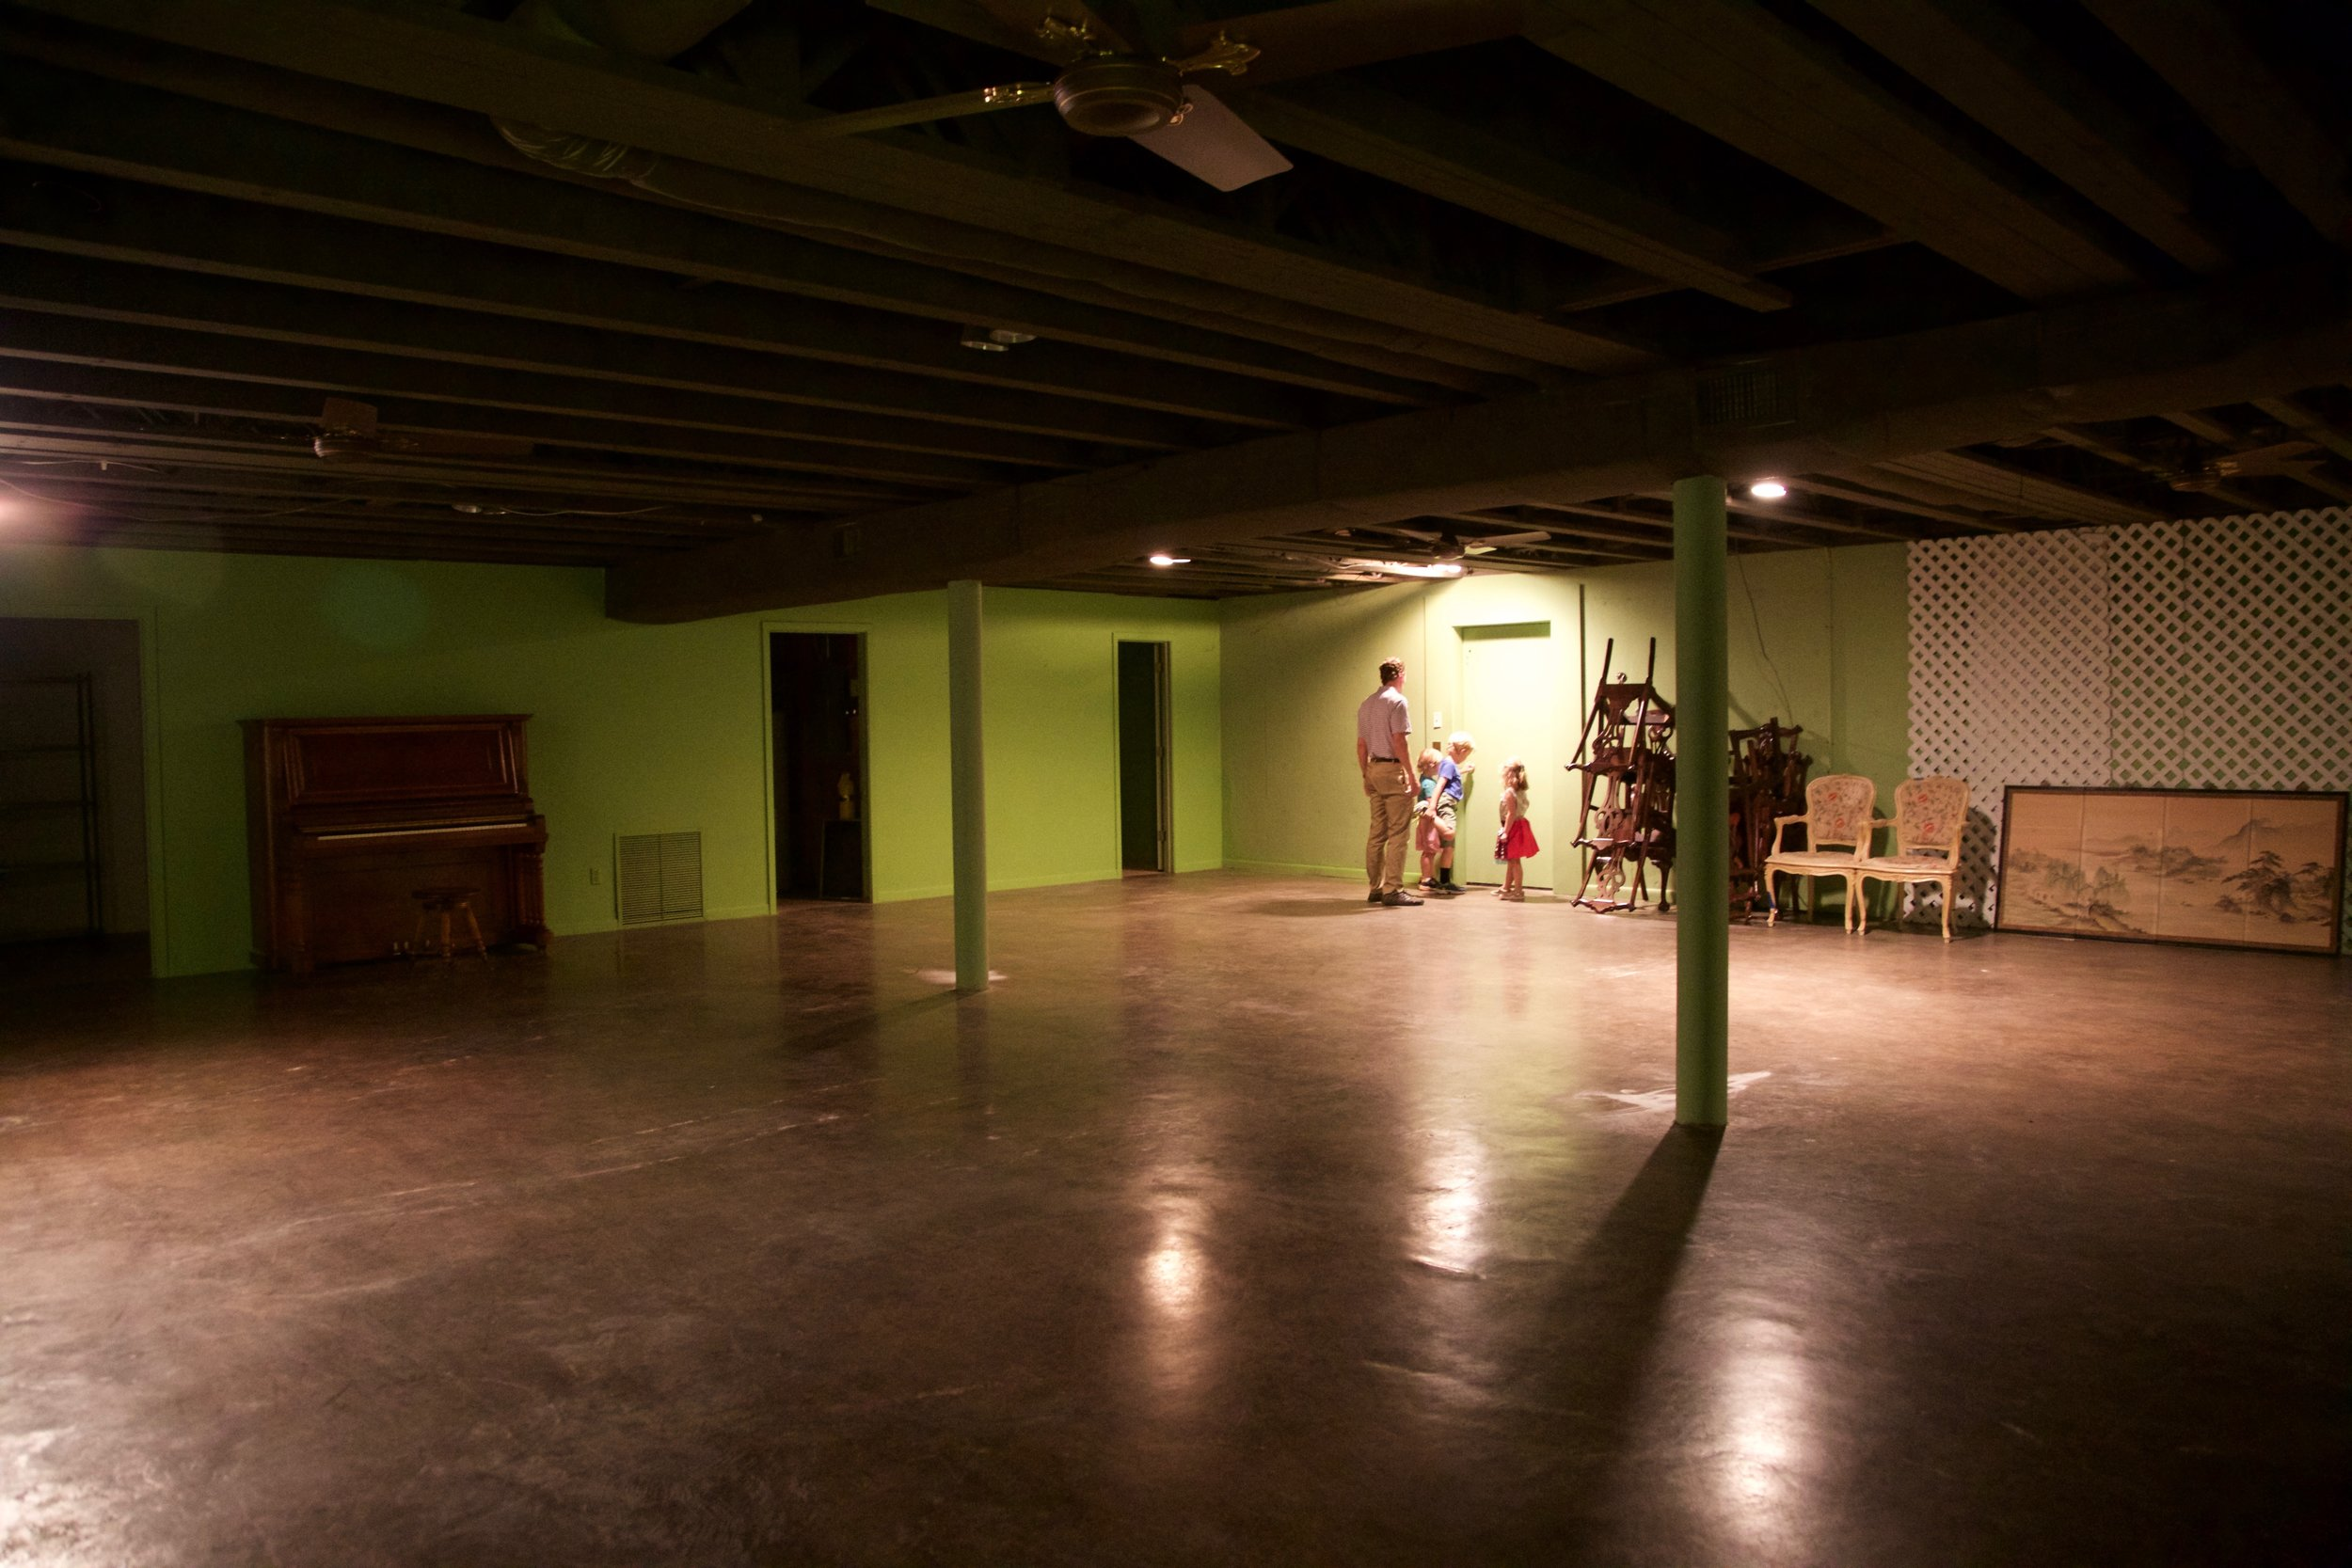 THE BASEMENT! One of the primary aspects of the house we were instantly in love with. An art room will be going down here, among other things! I briefly considered making it a roller rink and/or trampoline park. Those ideas got vetoed. xxSF.